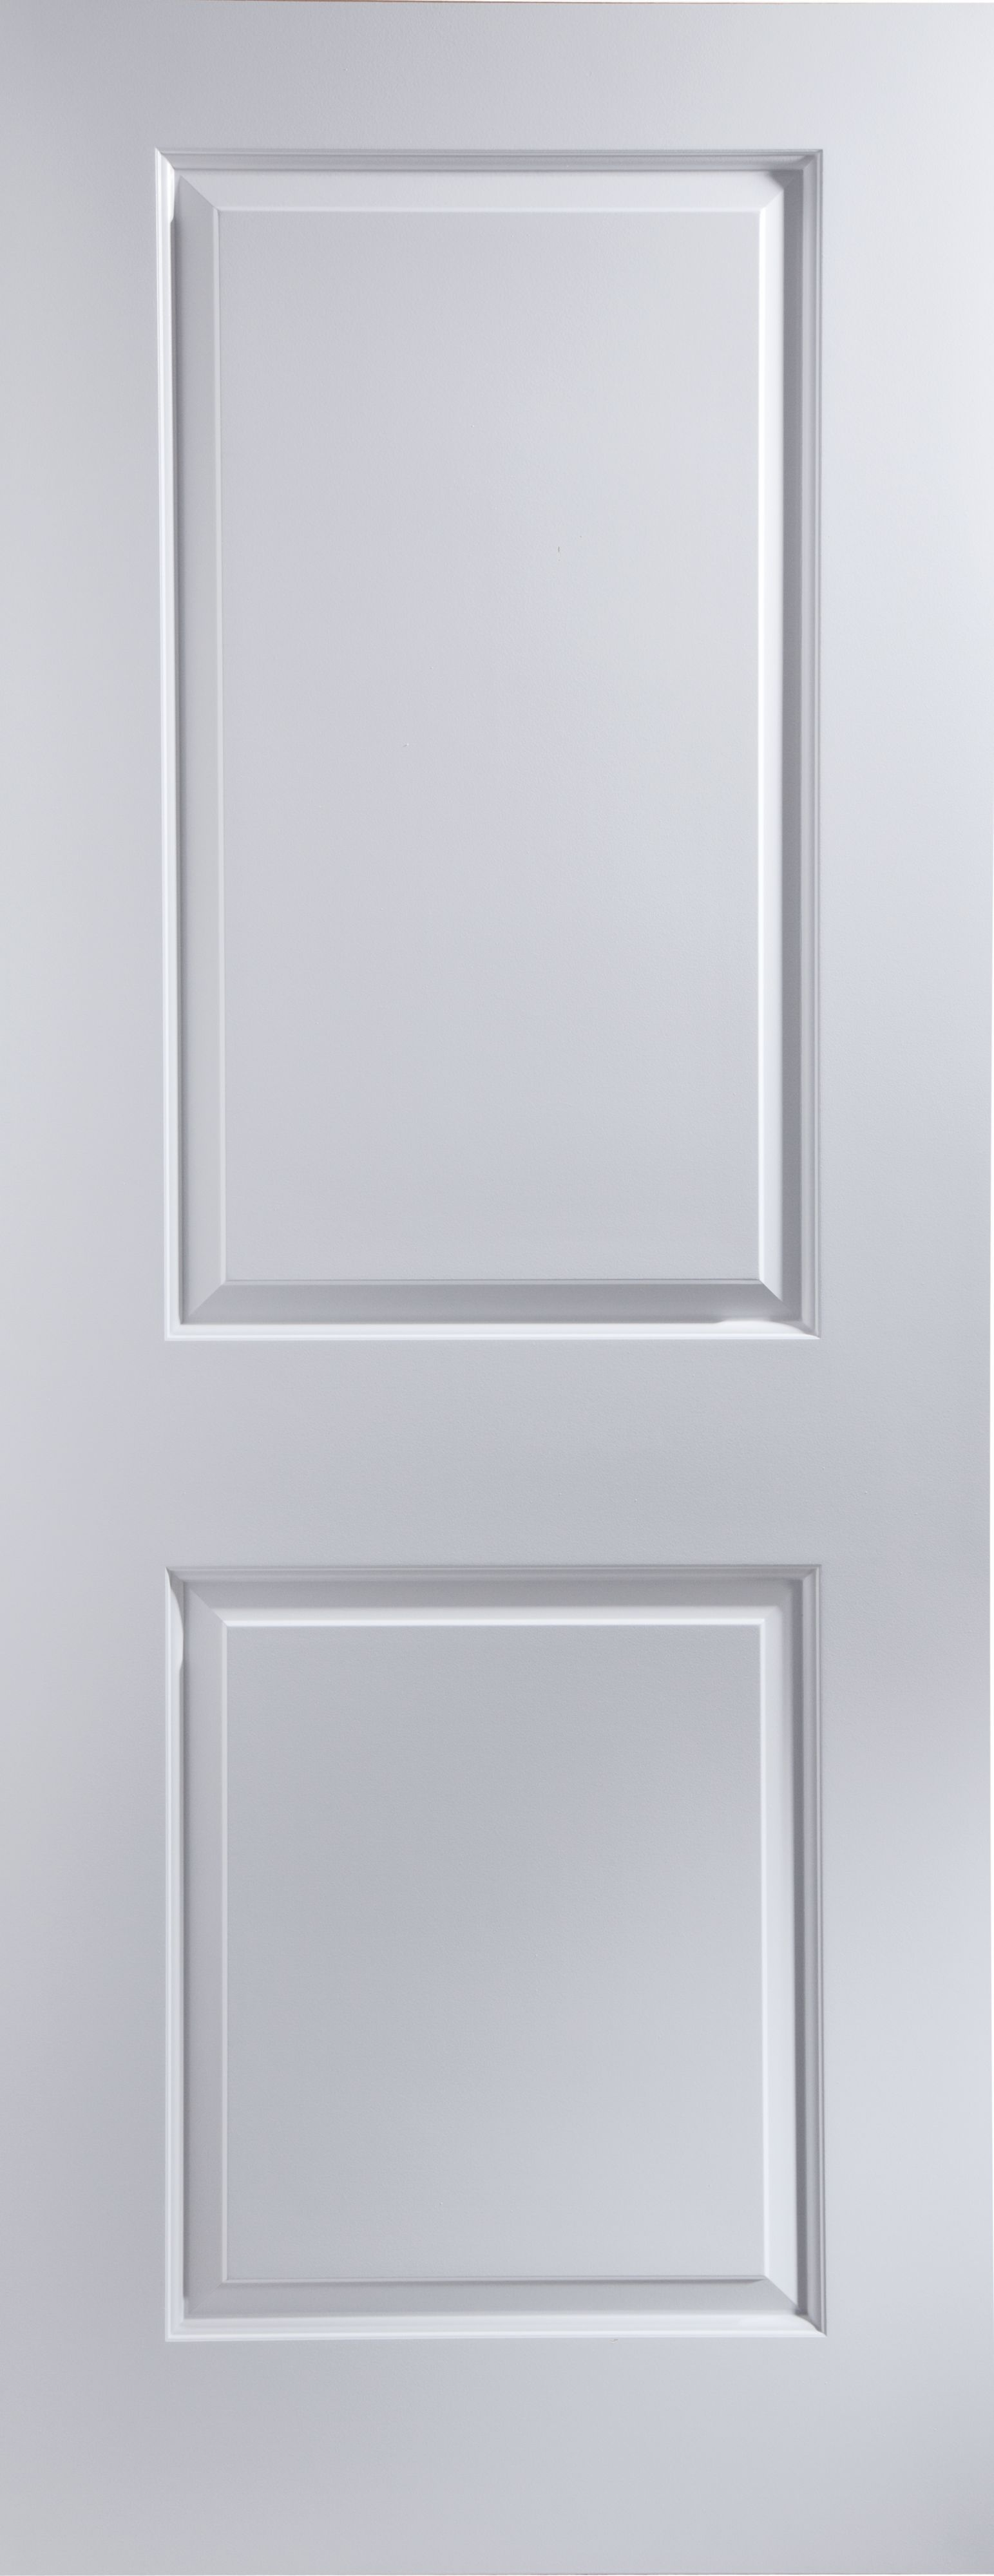 2 Panel Pre-painted White Smooth Unglazed Door Kit, (h)2040mm (w)826mm